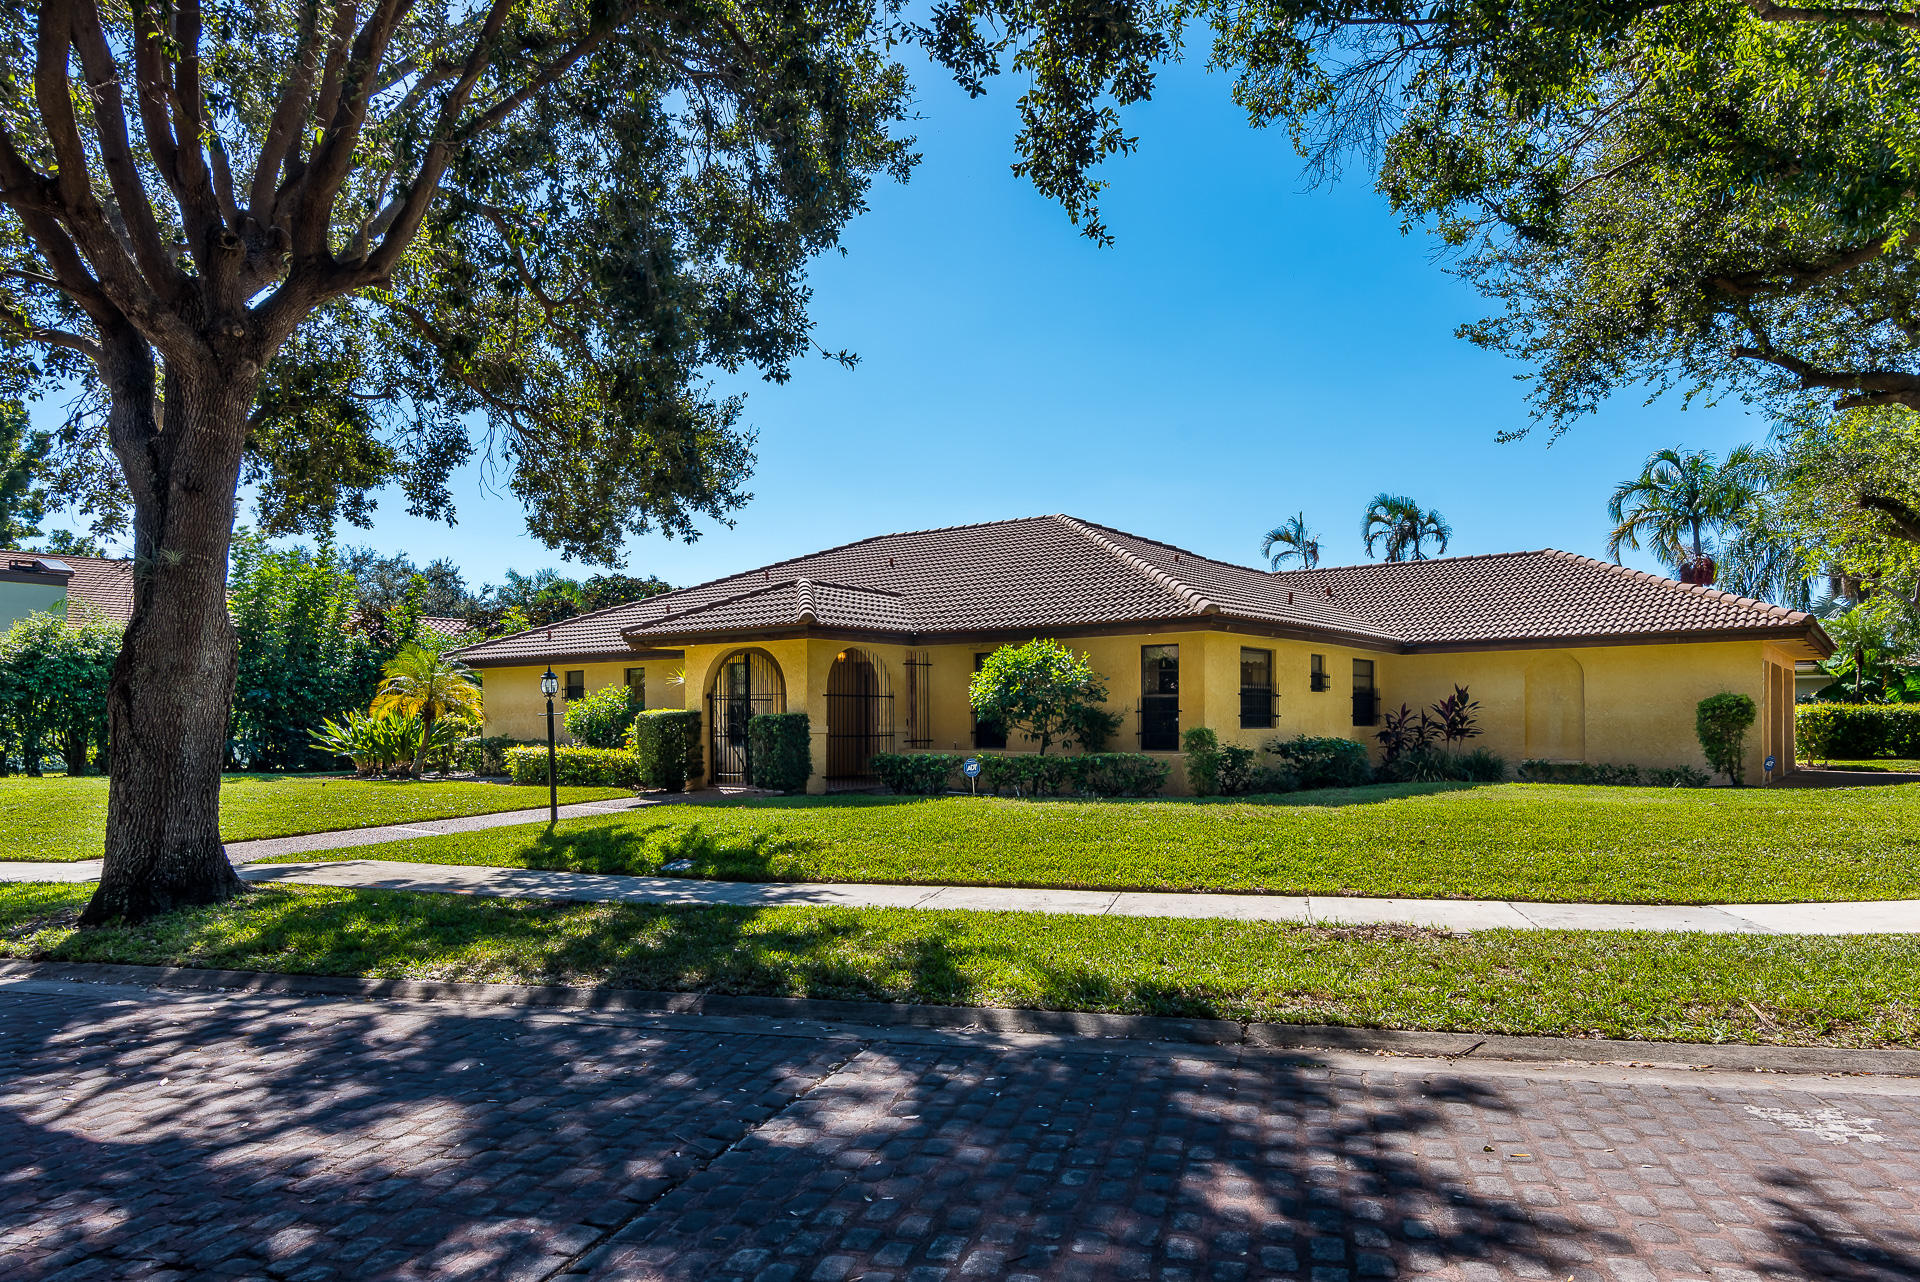 Home for sale in Whispering Woods Boca Raton Florida